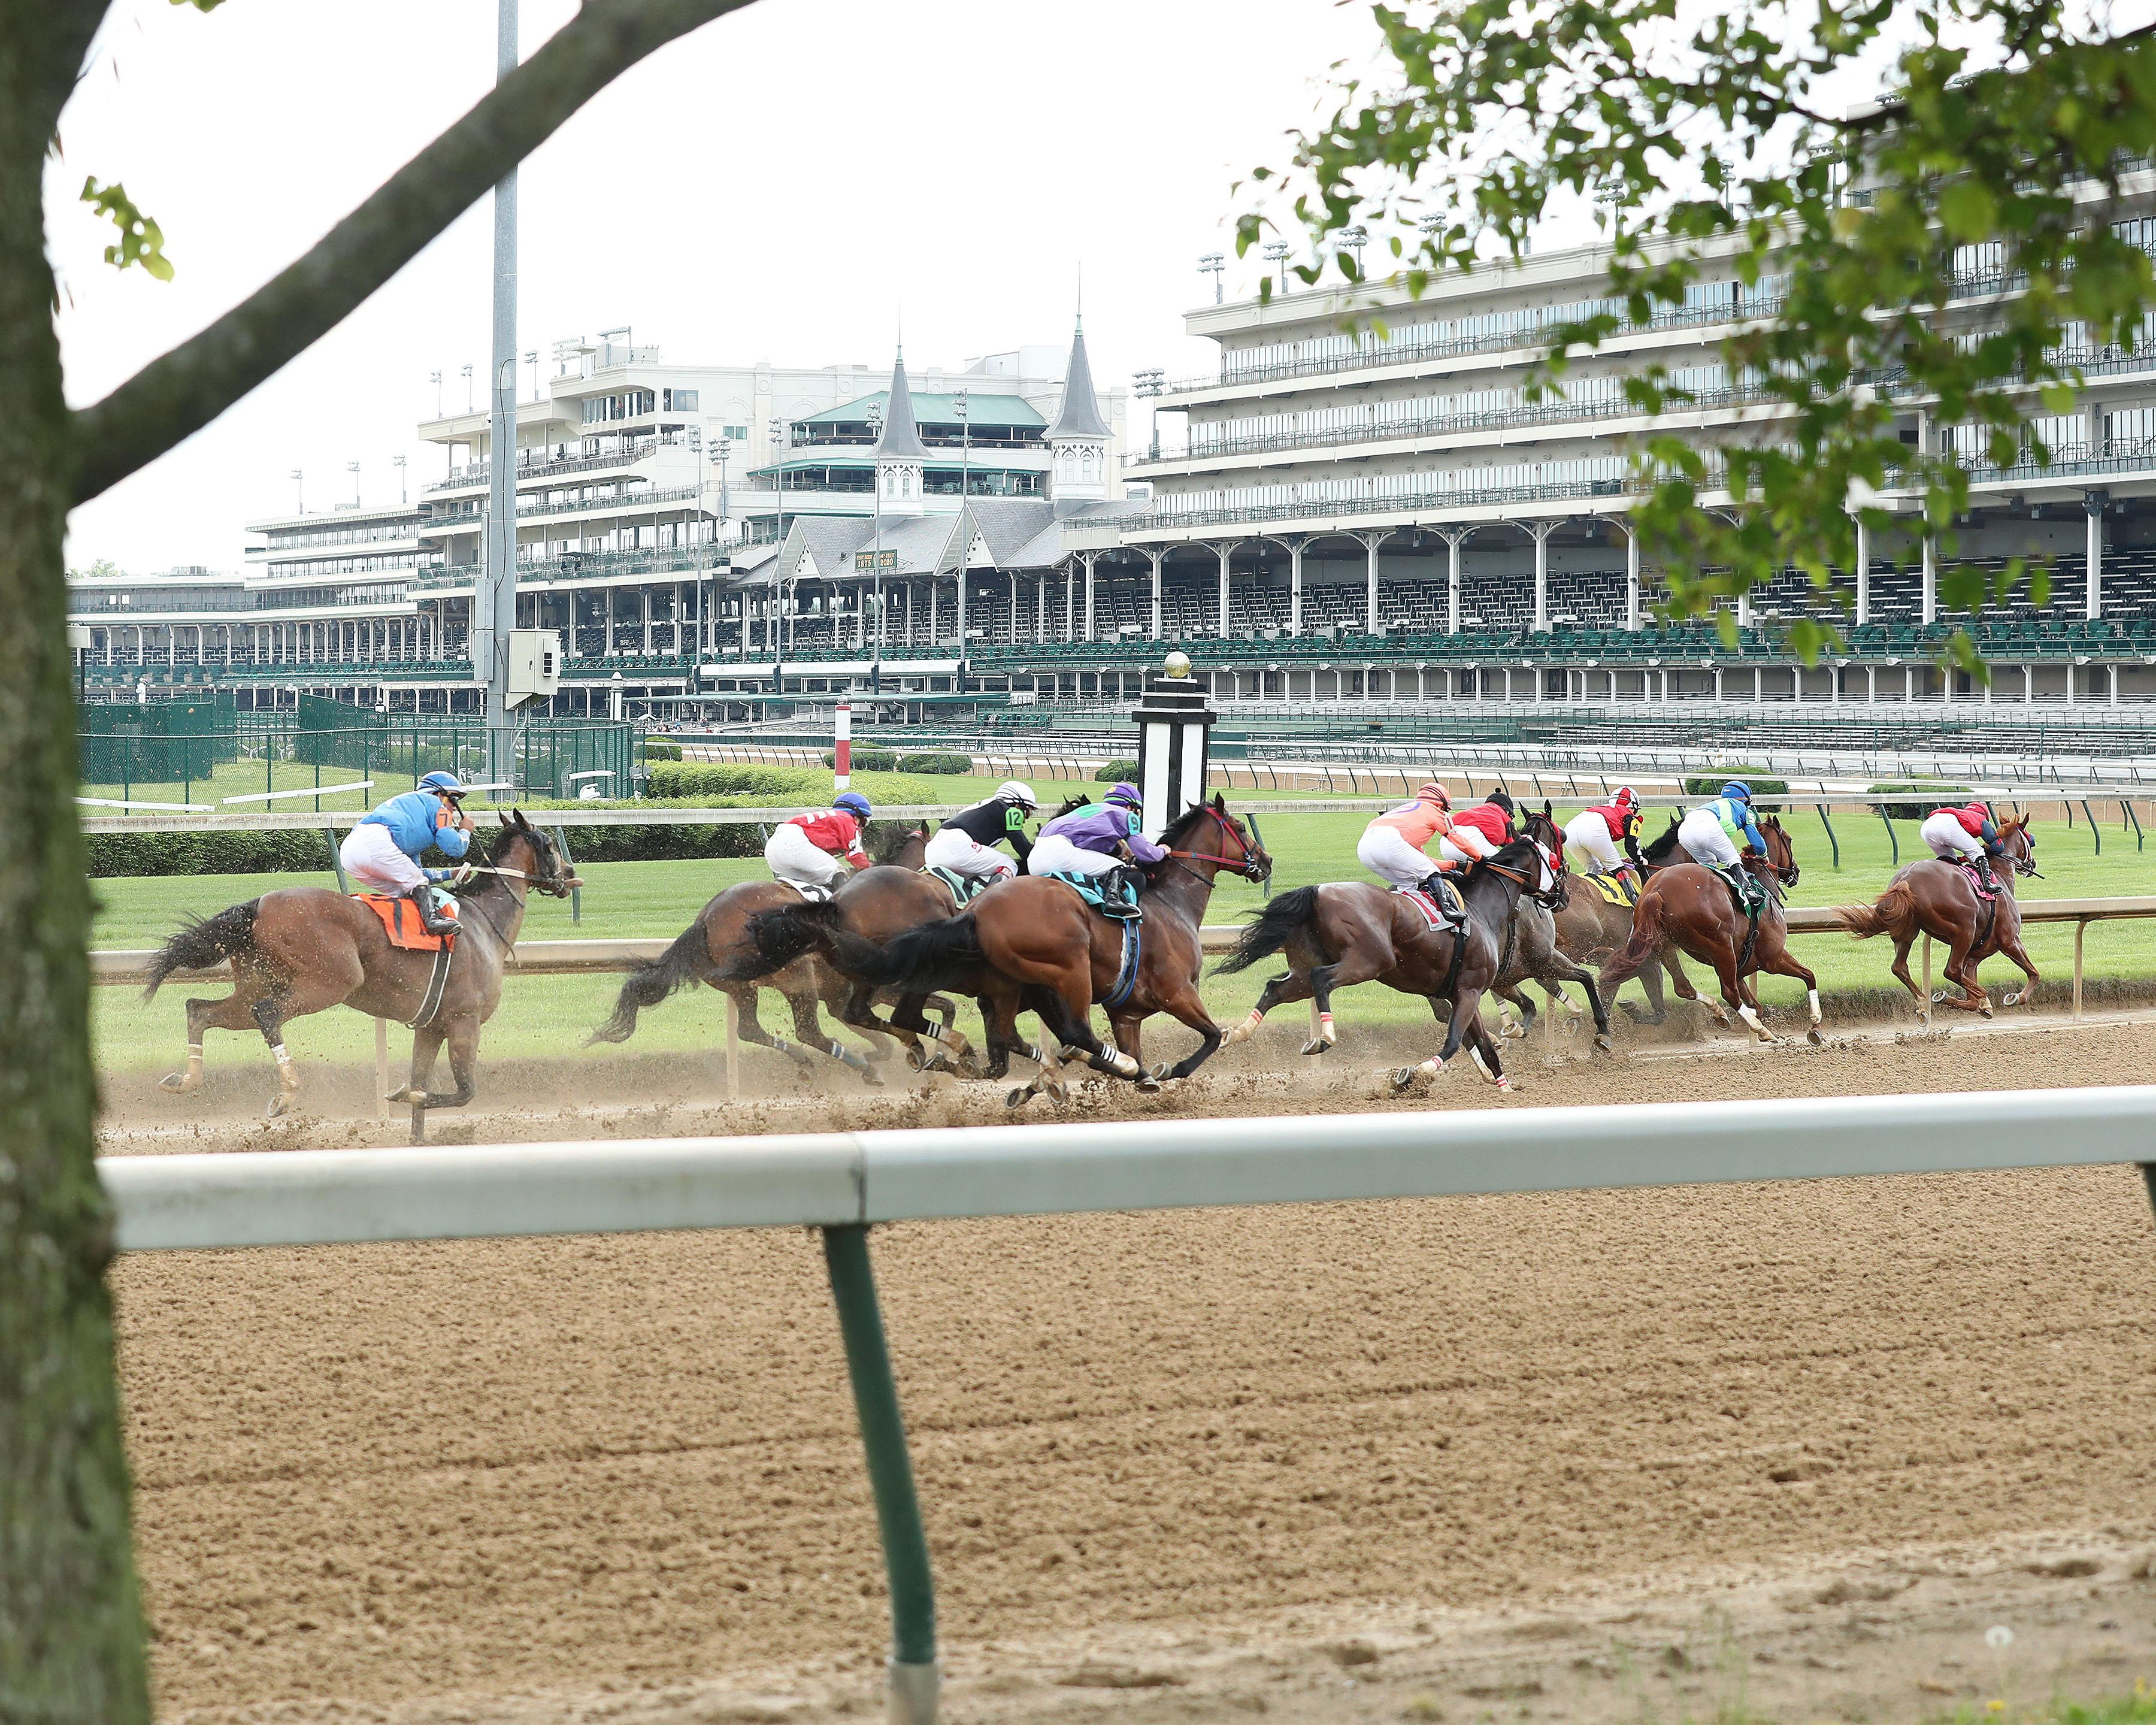 Kentucky Derby to be Run Without Fans